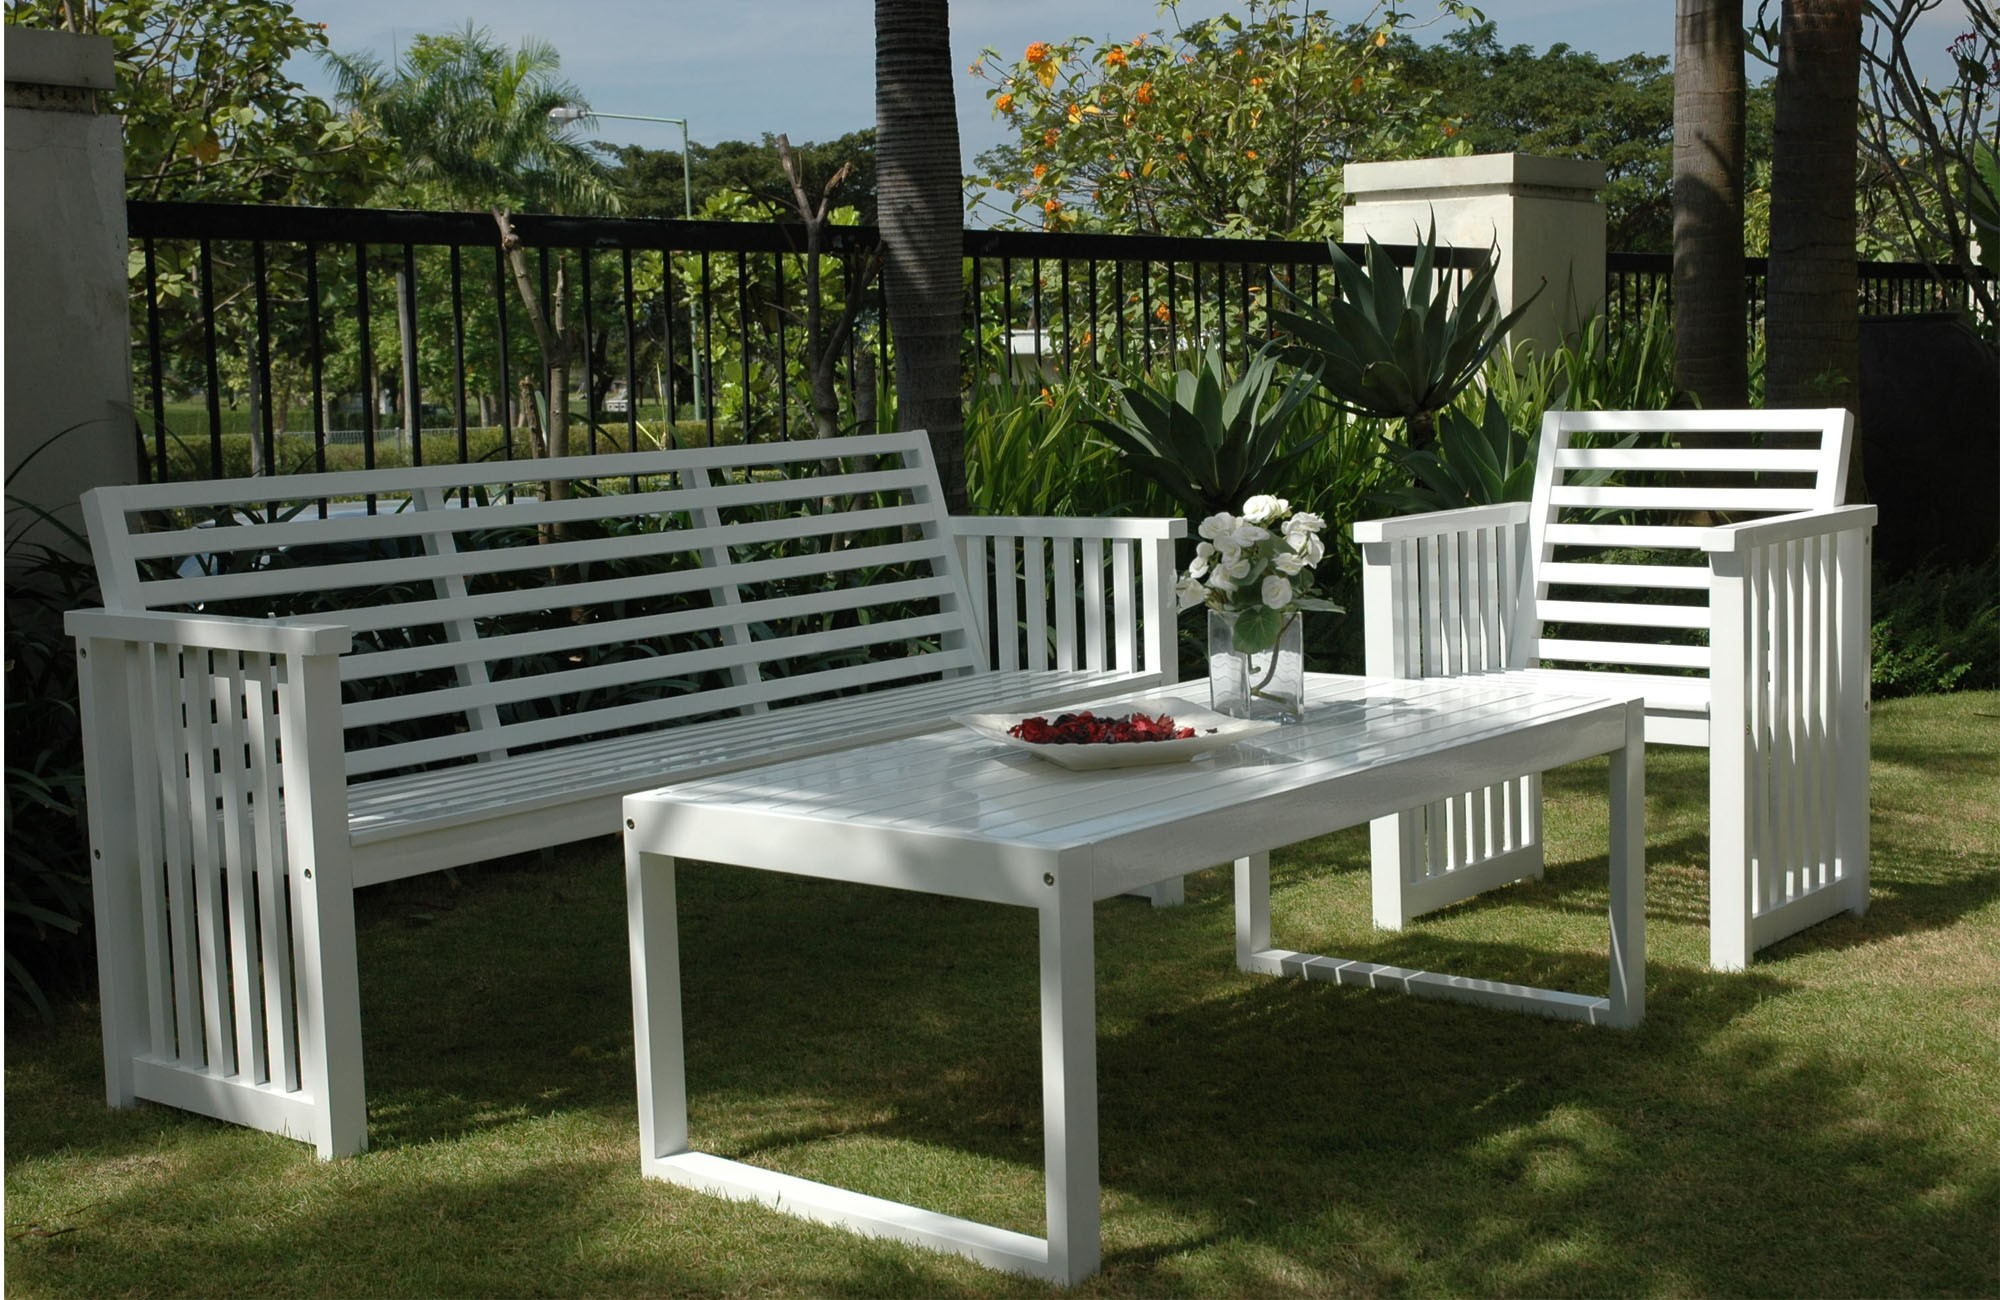 Inspira furnexindo indoor and garden furniture for Garden furniture manufacturers